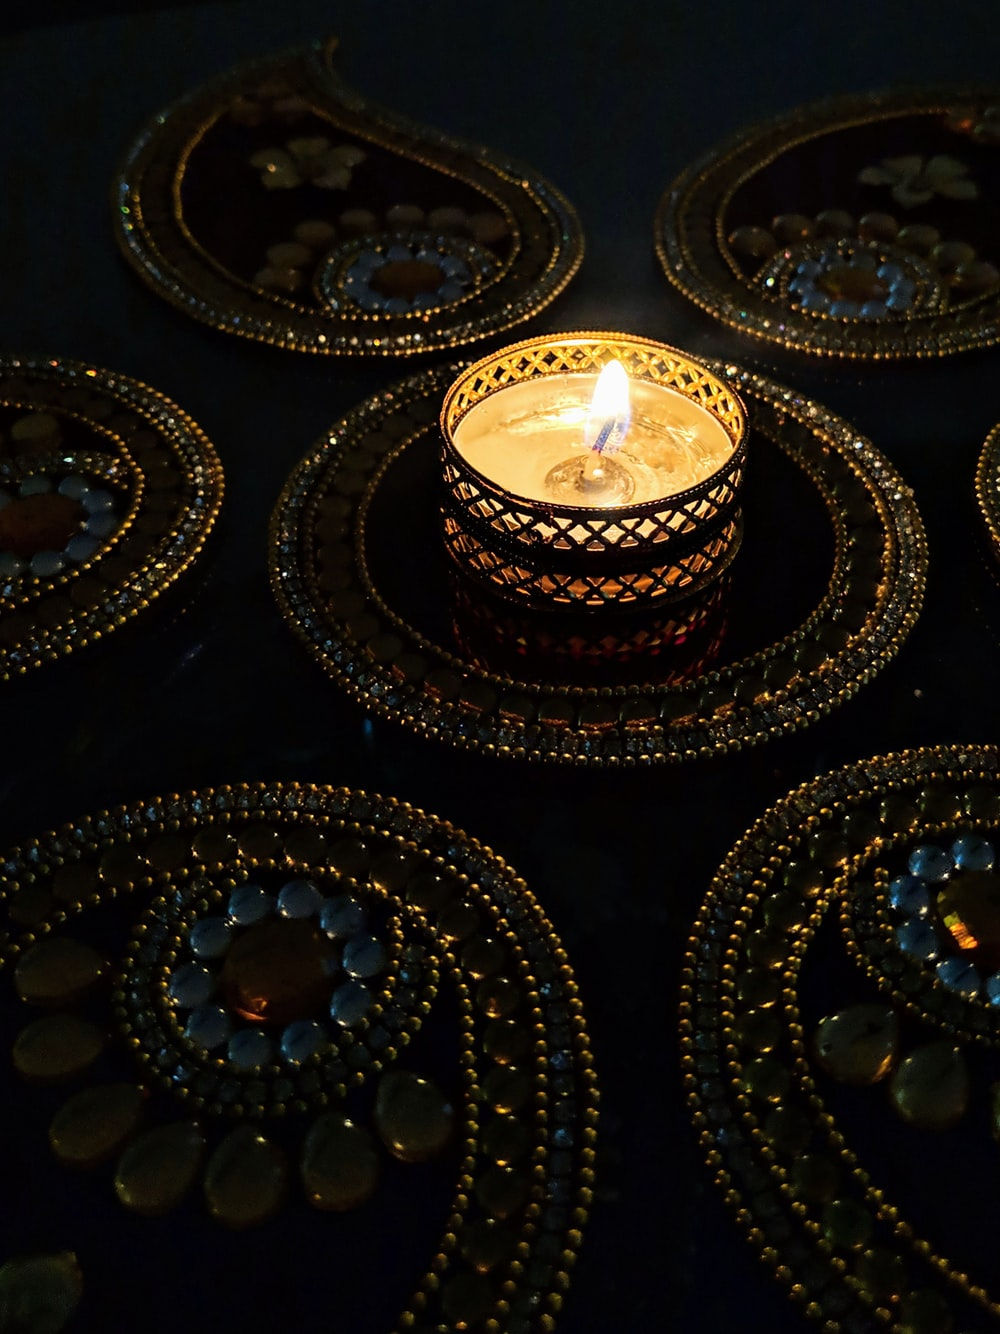 350 Diwali Pictures Download Free Images On Unsplash